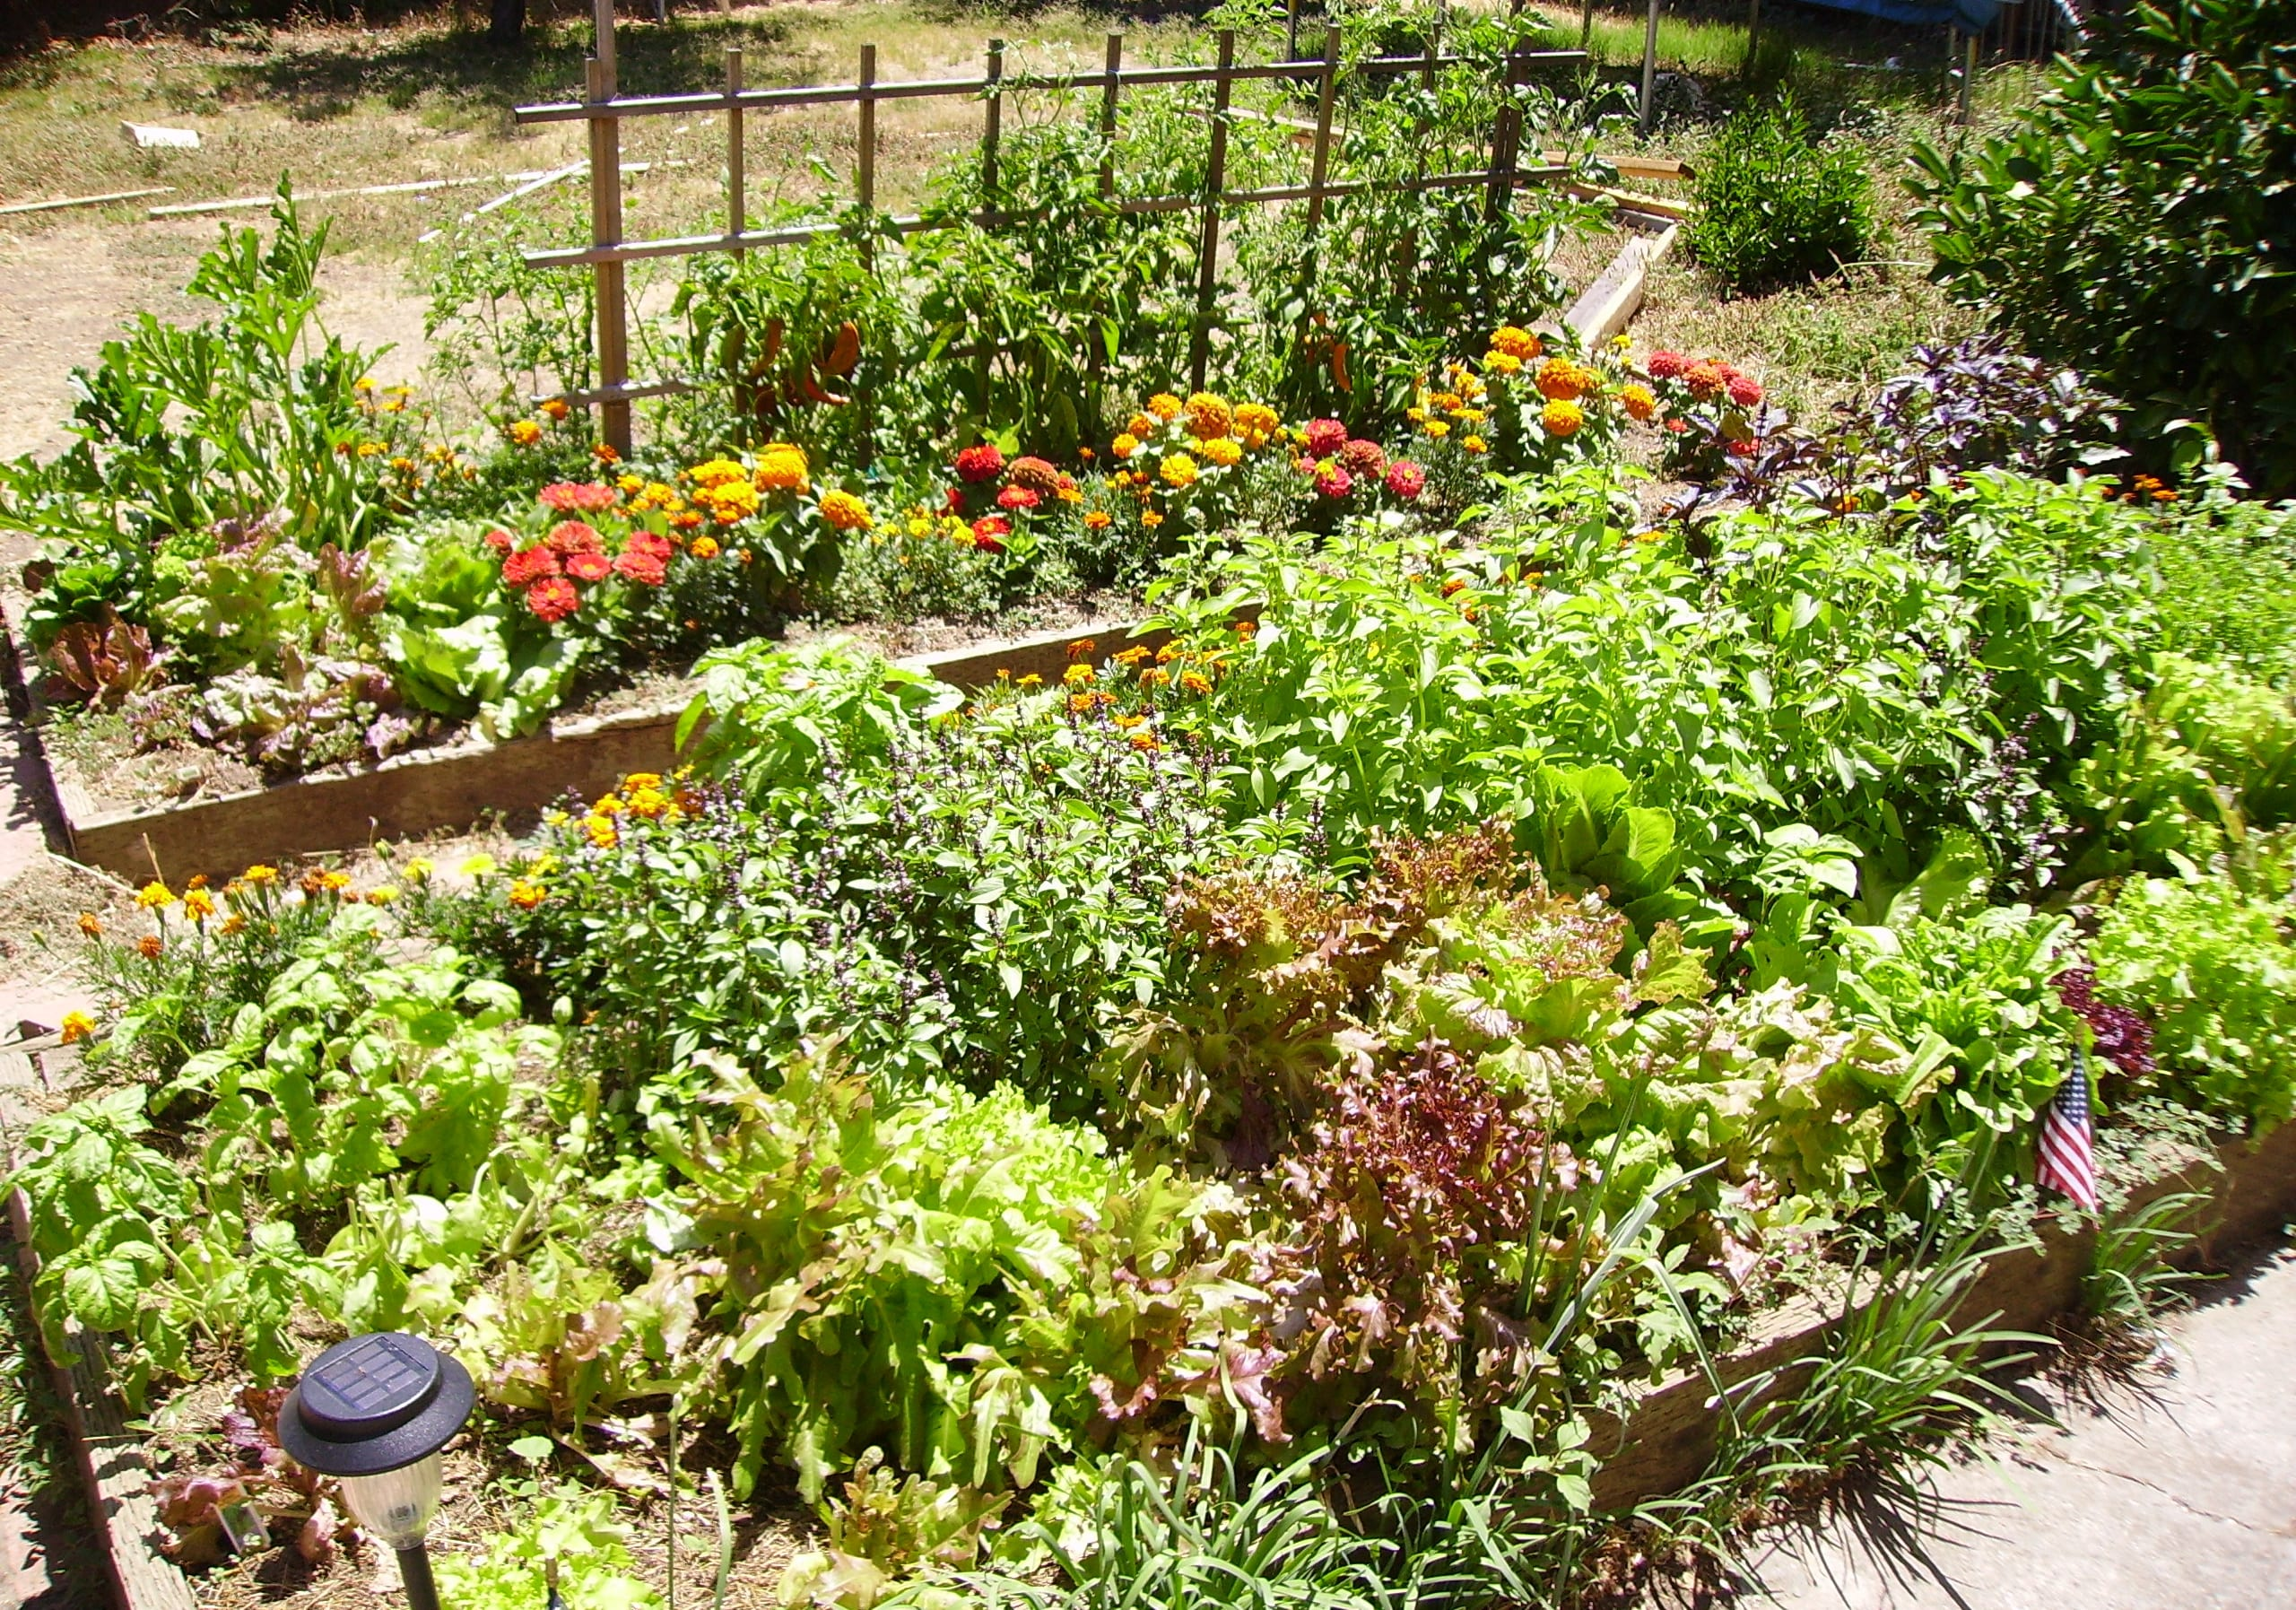 Gardening Tips On Layout Planning For Your First Vegetable Garden